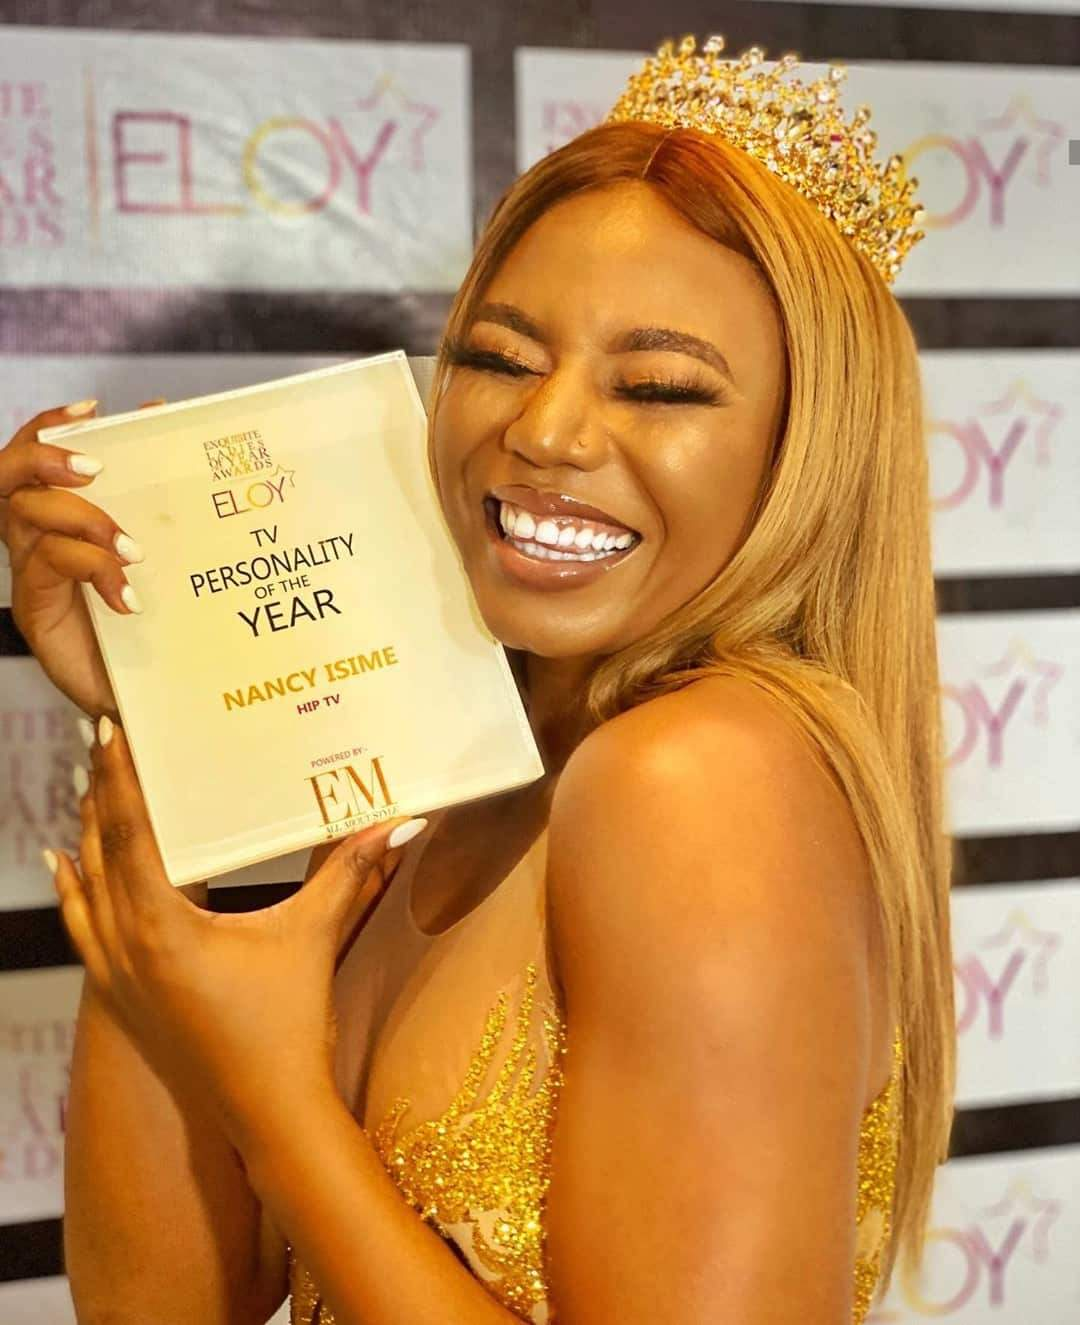 Eloy Awards: Nancy Isime bags TV personality of the year award